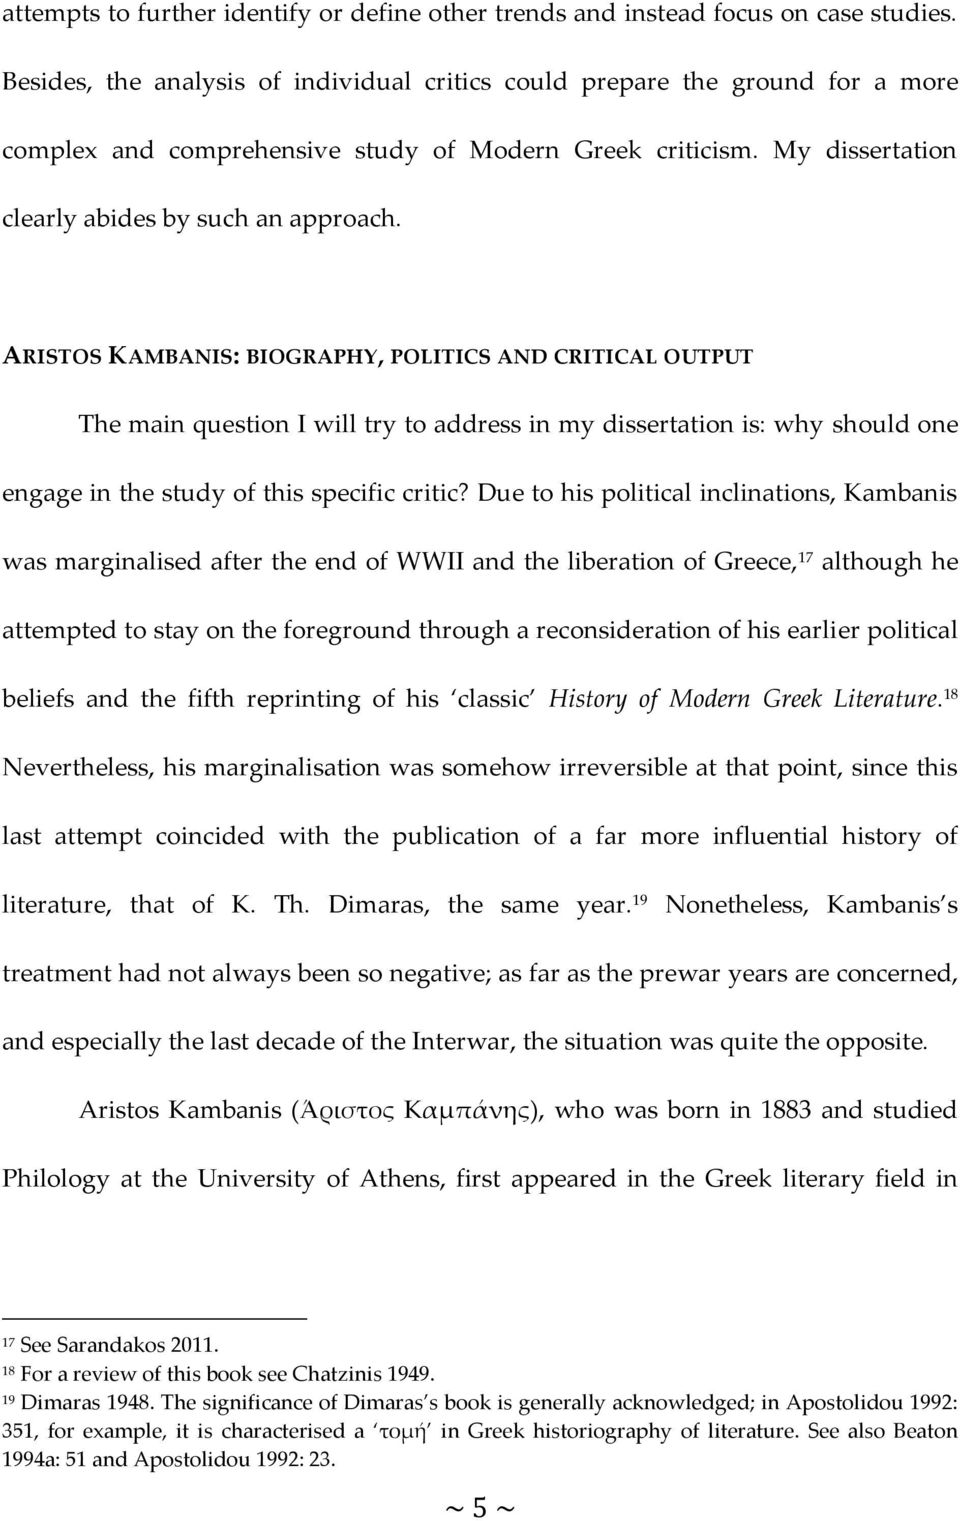 ARISTOS KAMBANIS: BIOGRAPHY, POLITICS AND CRITICAL OUTPUT The main question I will try to address in my dissertation is: why should one engage in the study of this specific critic?